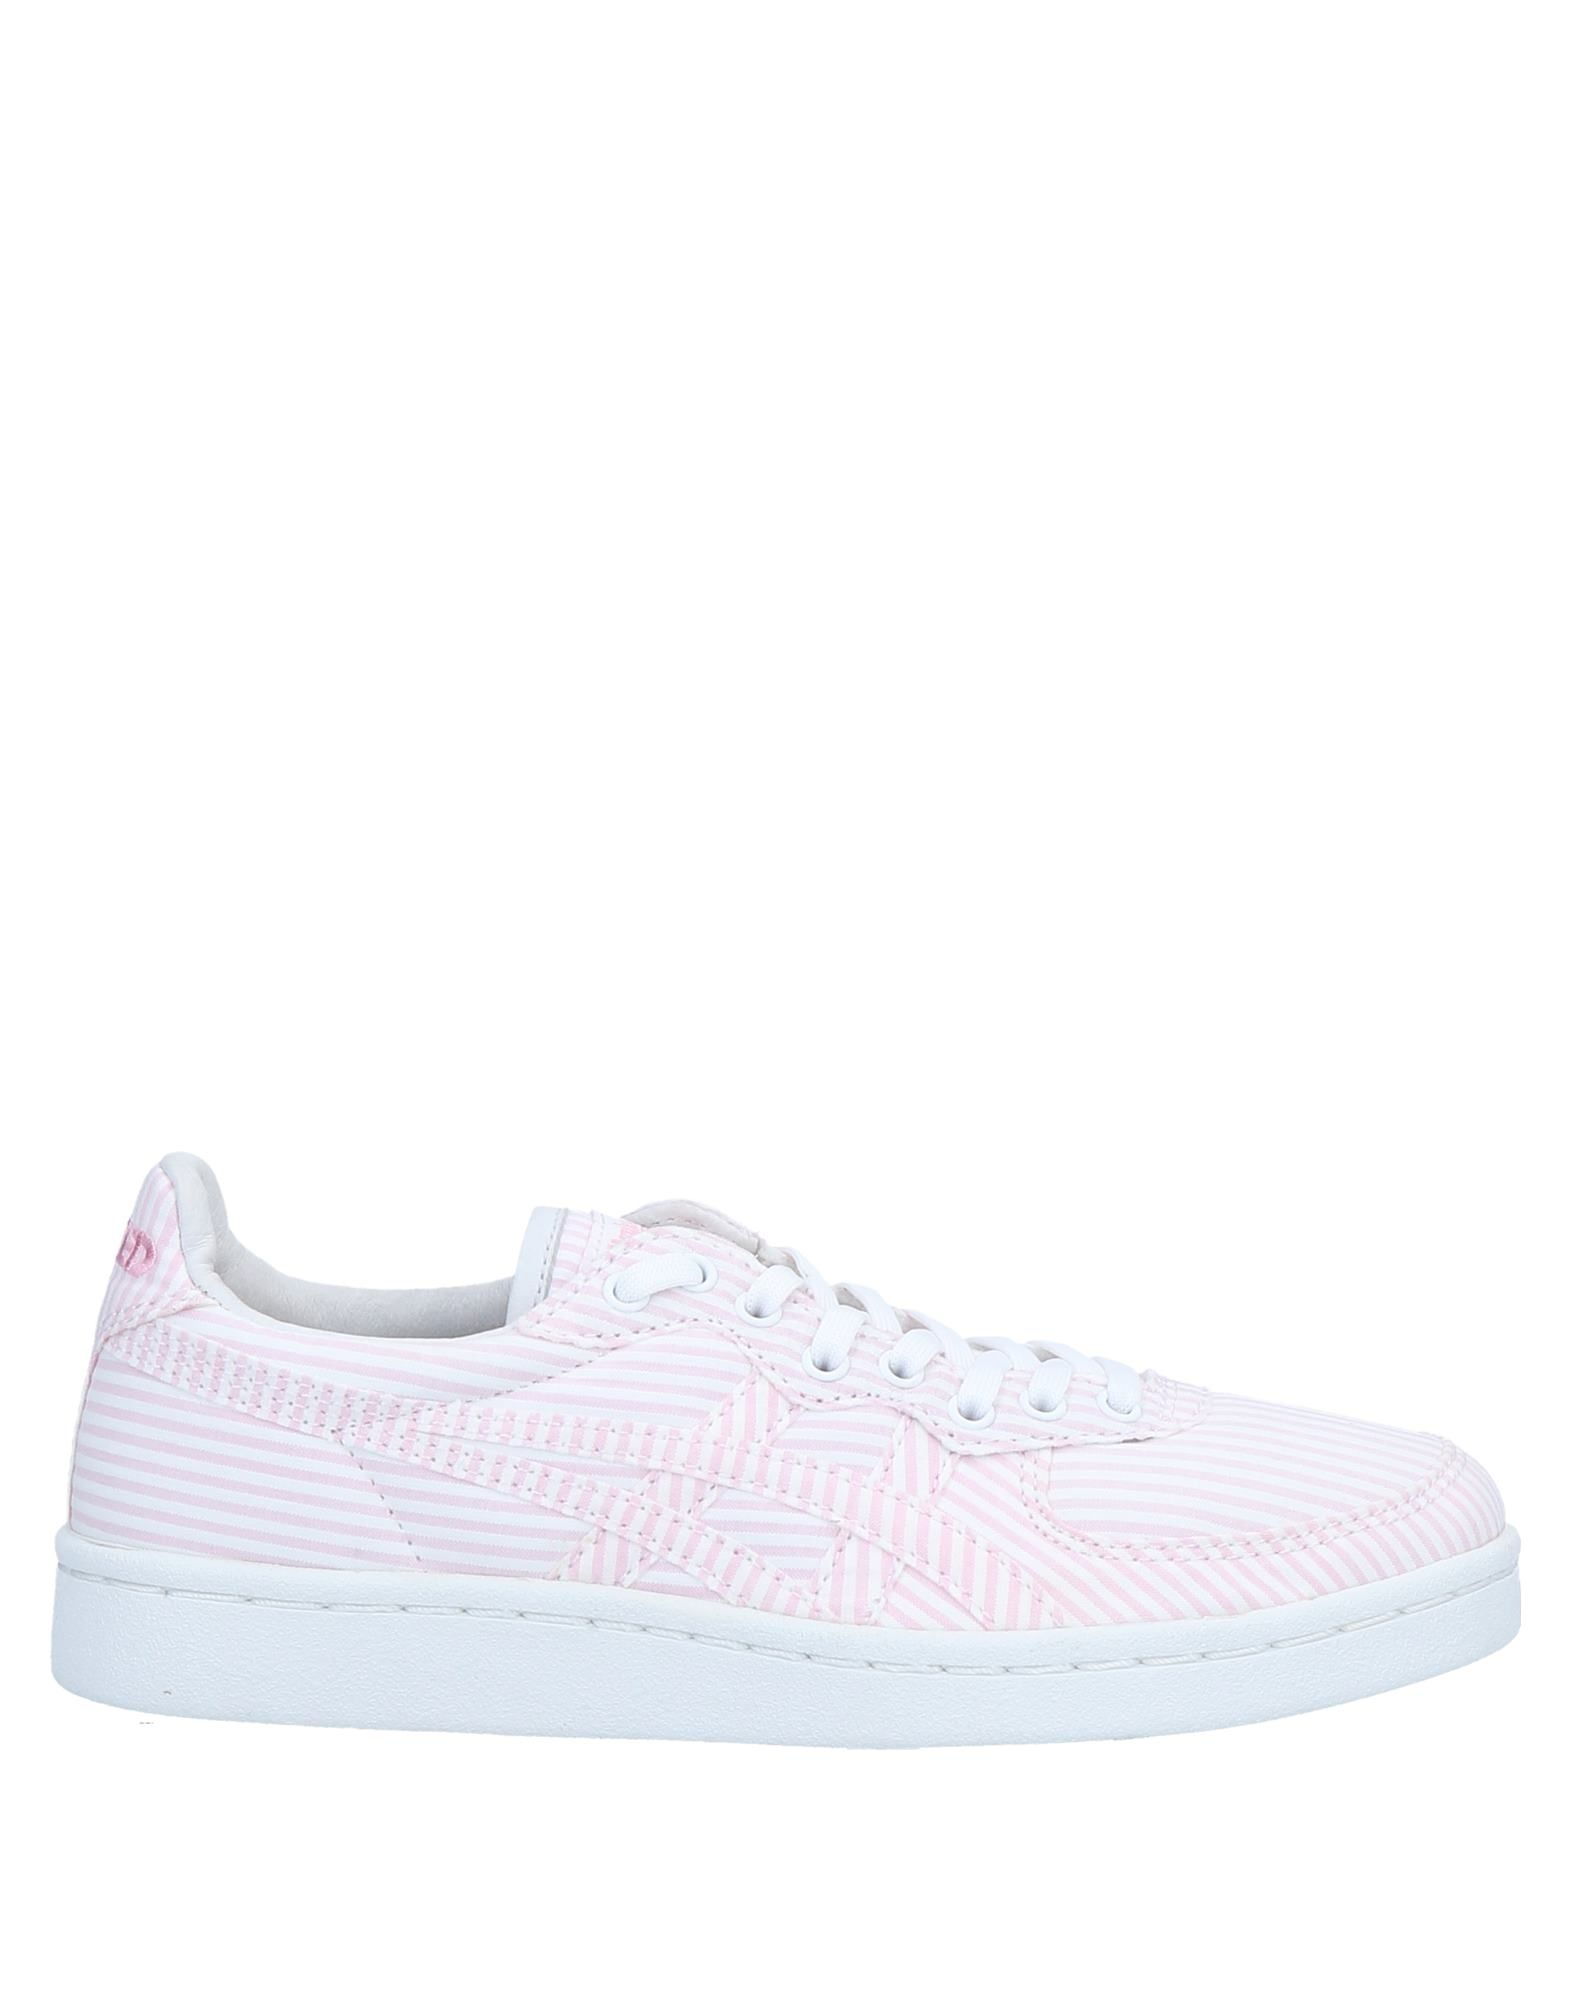 Onitsuka Tiger Tiger Sneakers - Women Onitsuka Tiger Tiger Sneakers online on  United Kingdom - 11554650IW 559cc4